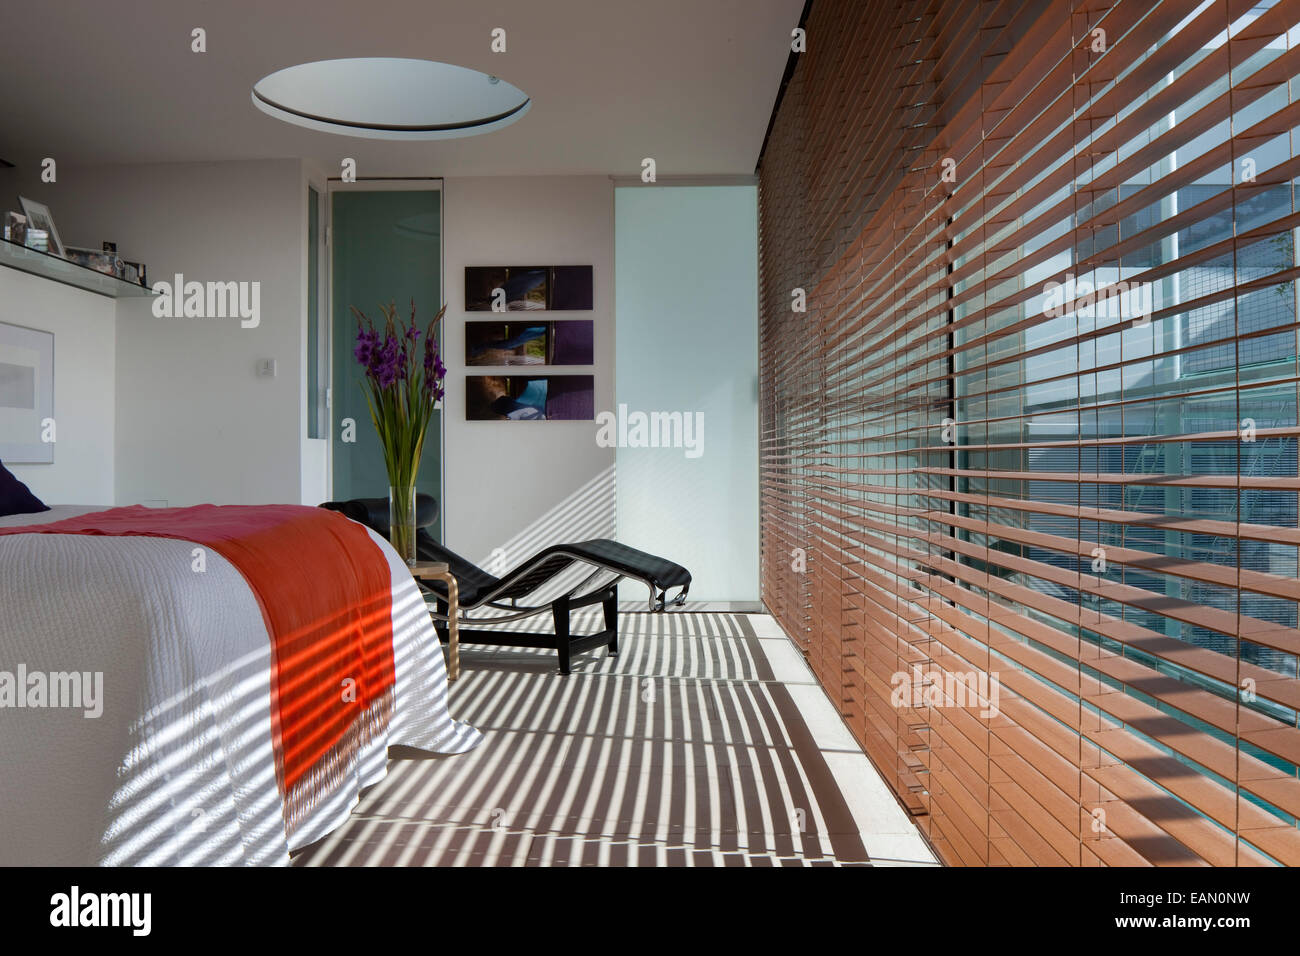 Light Filters Through Venetian Blinds Into Modern Bedroom, Lavender House,  Hampstead, London